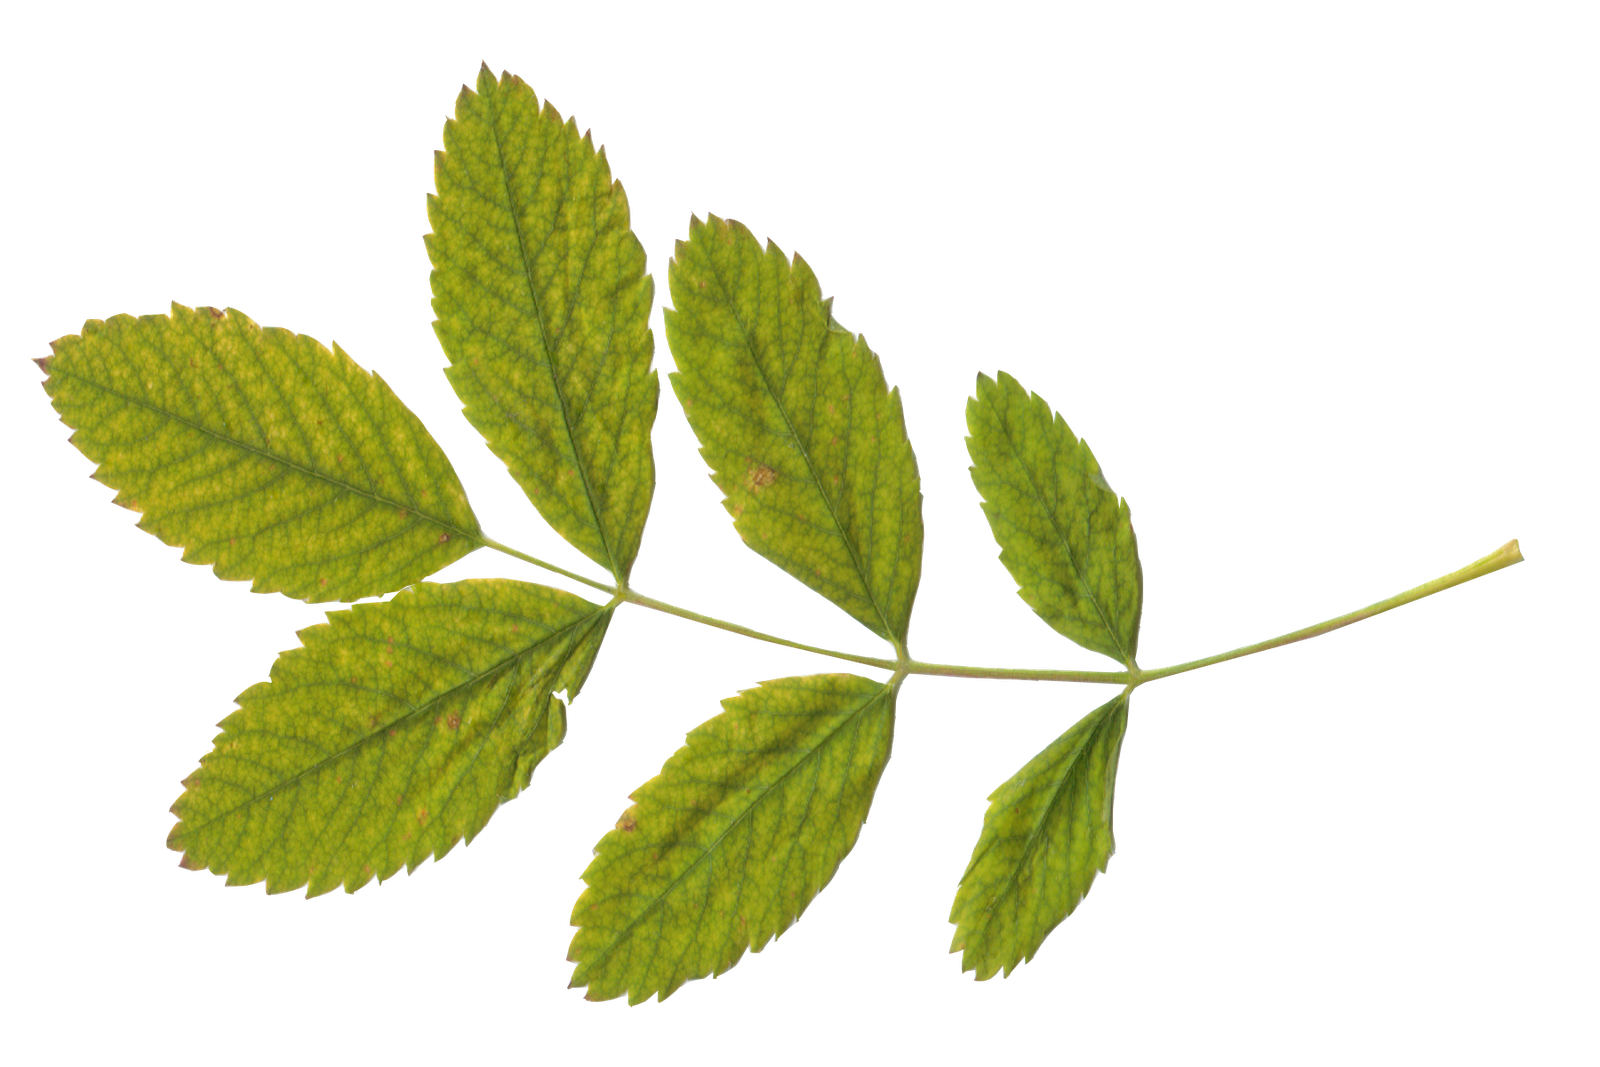 Branch with leaves png. Green images free download